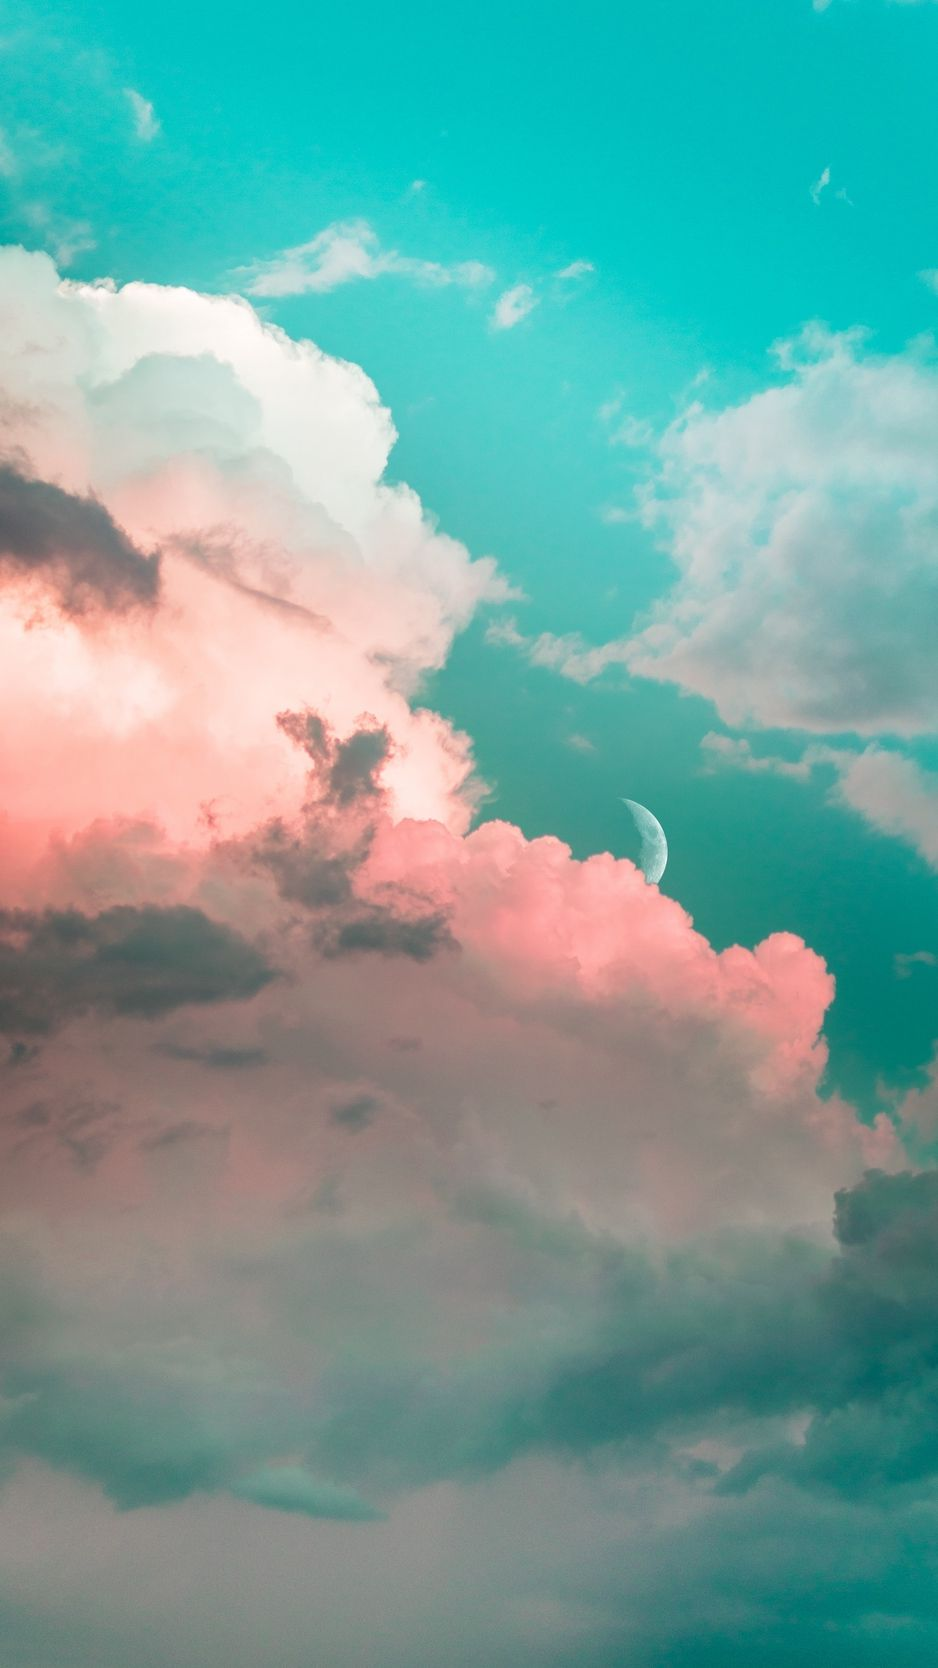 See more ideas about 4k wallpaper download, wallpaper downloads, wallpaper. Pink Cloud Aesthetic Desktop Wallpapers - Wallpaper Cave